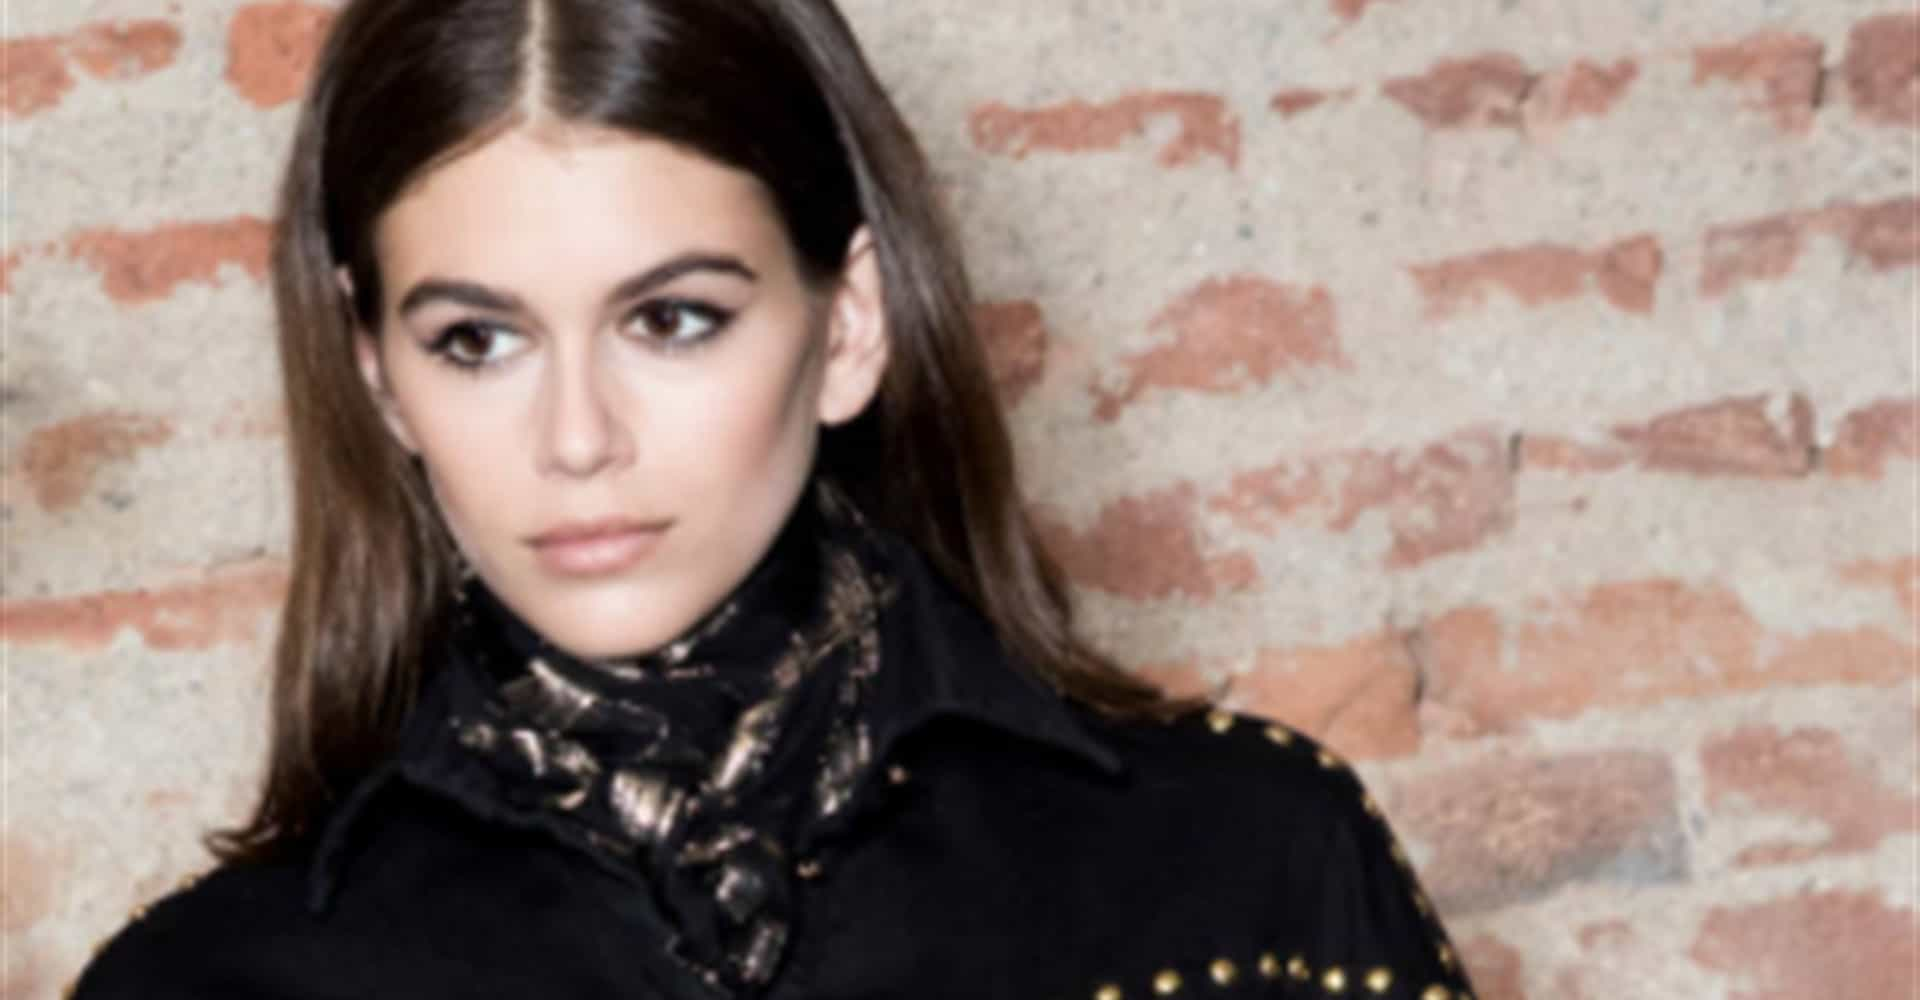 Kaia Gerber: the style of Cindy Crawford's daughter